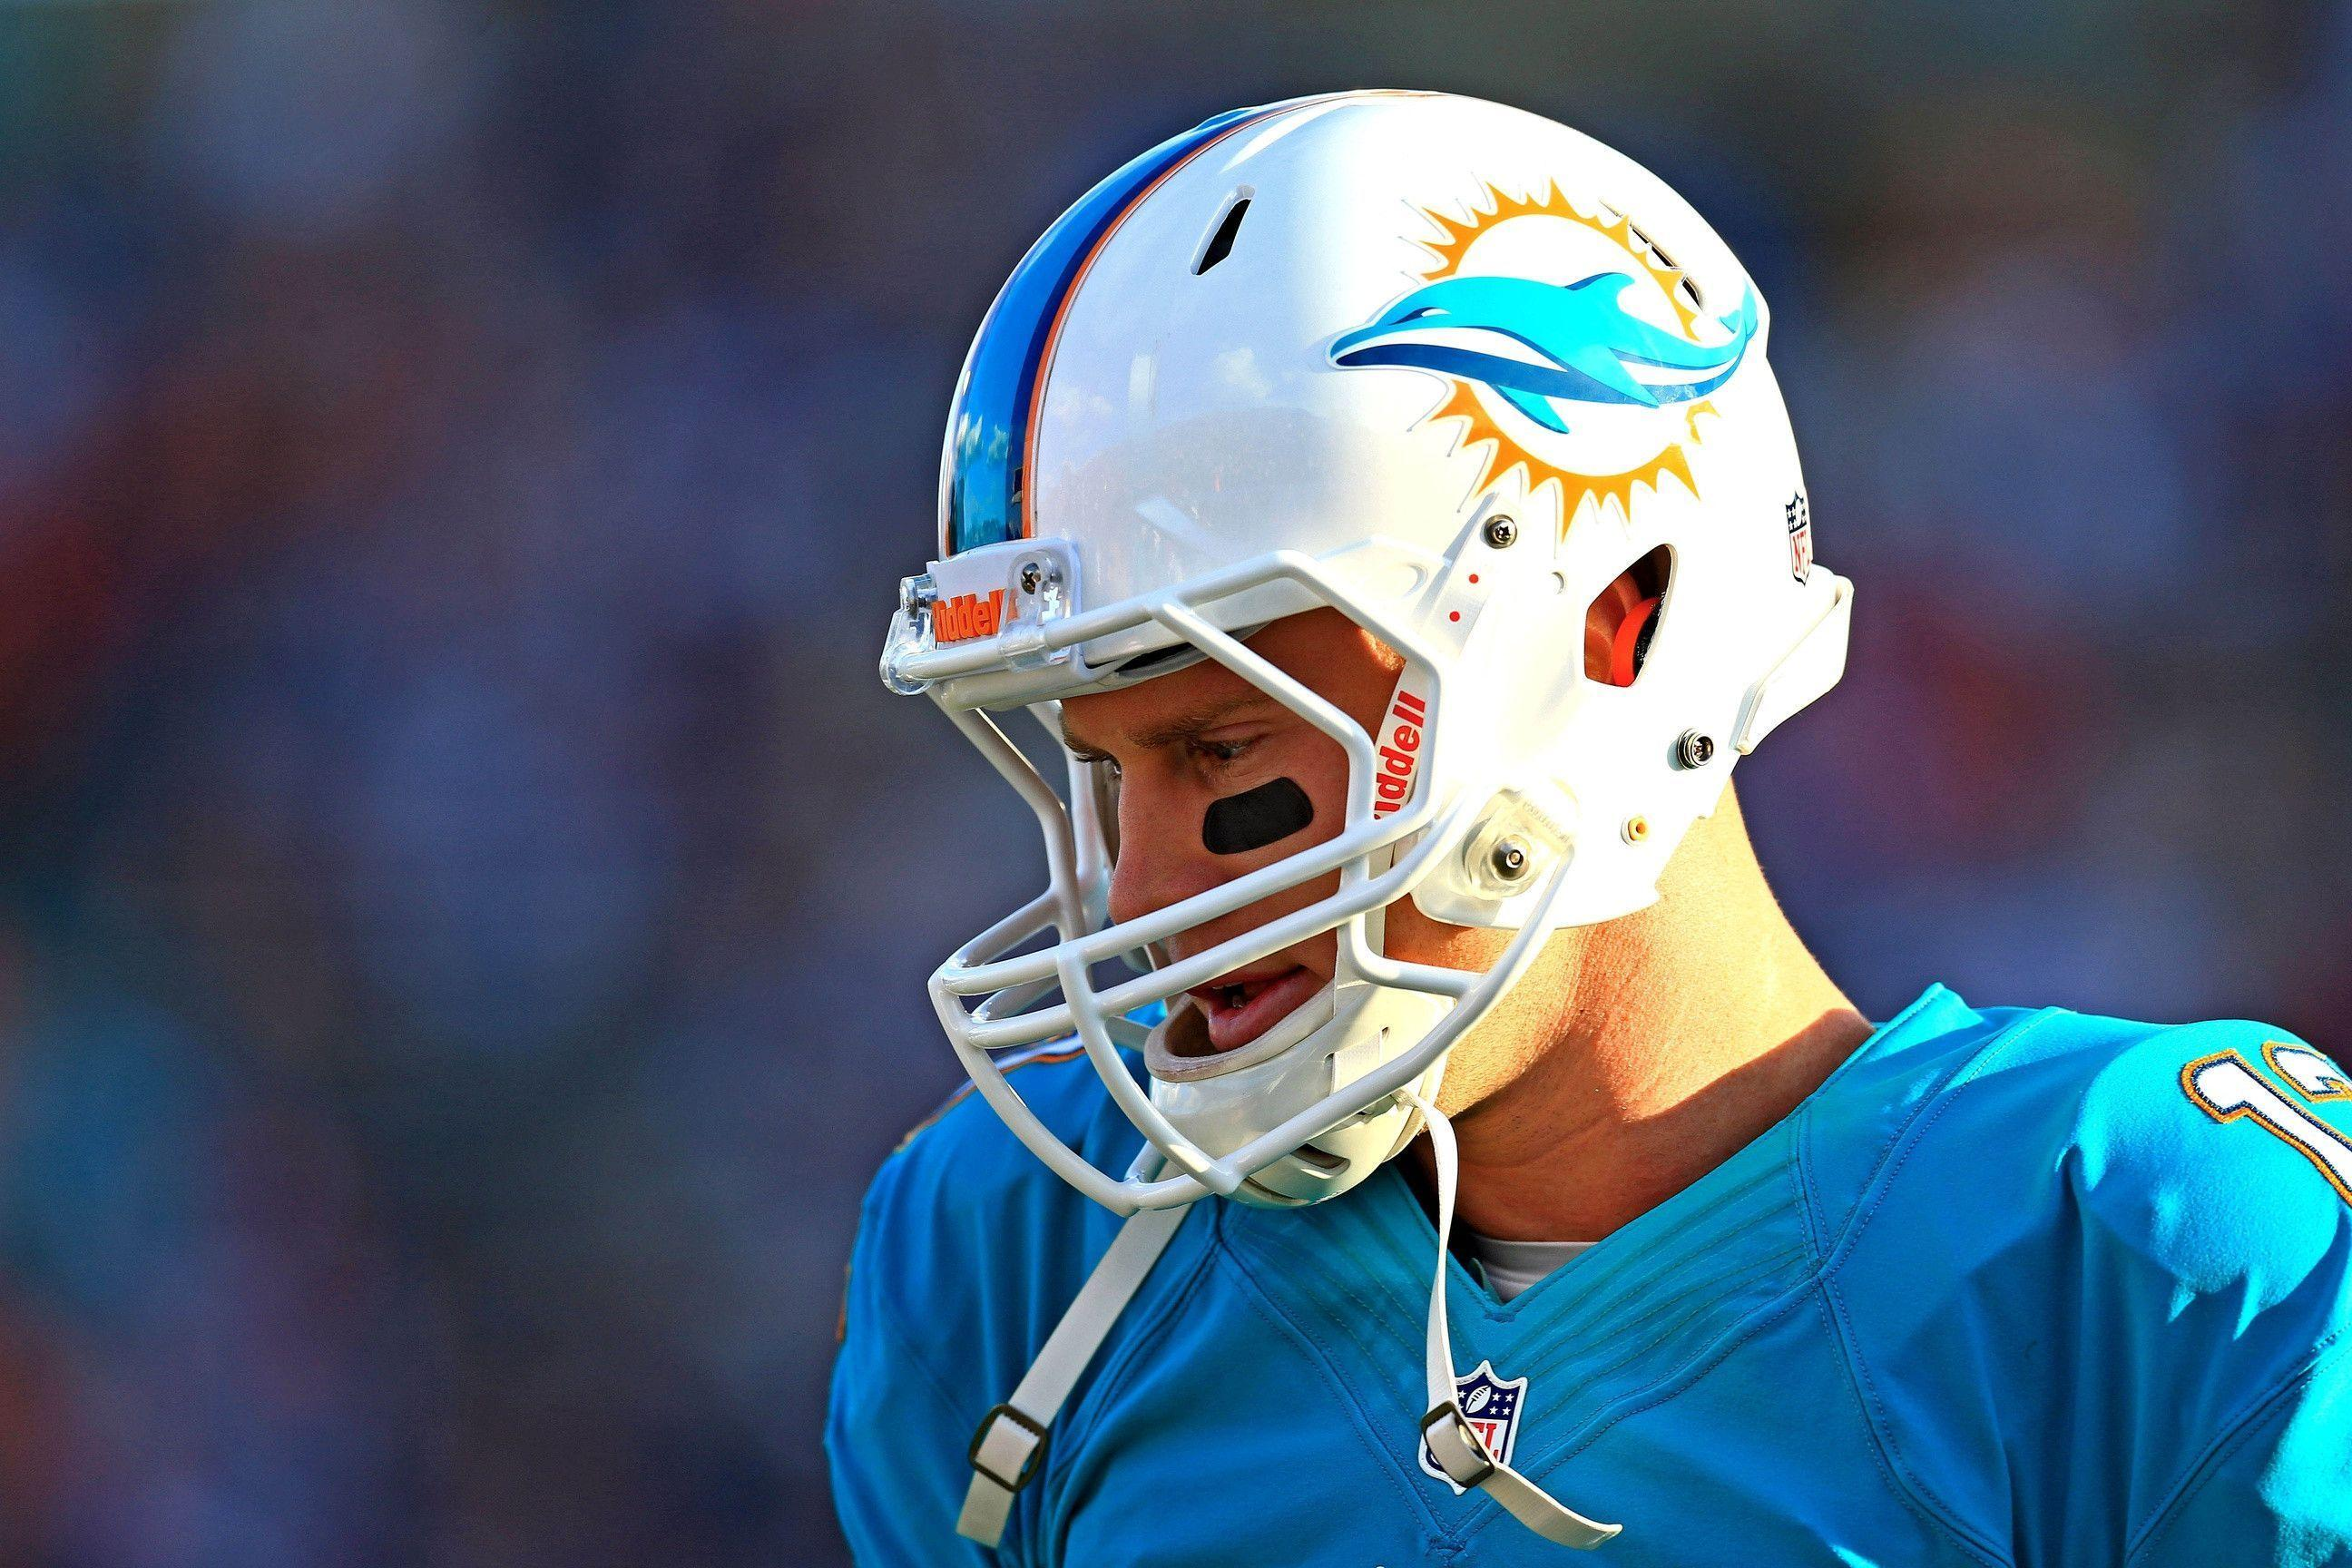 MIAMI DOLPHINS nfl football rq wallpapers